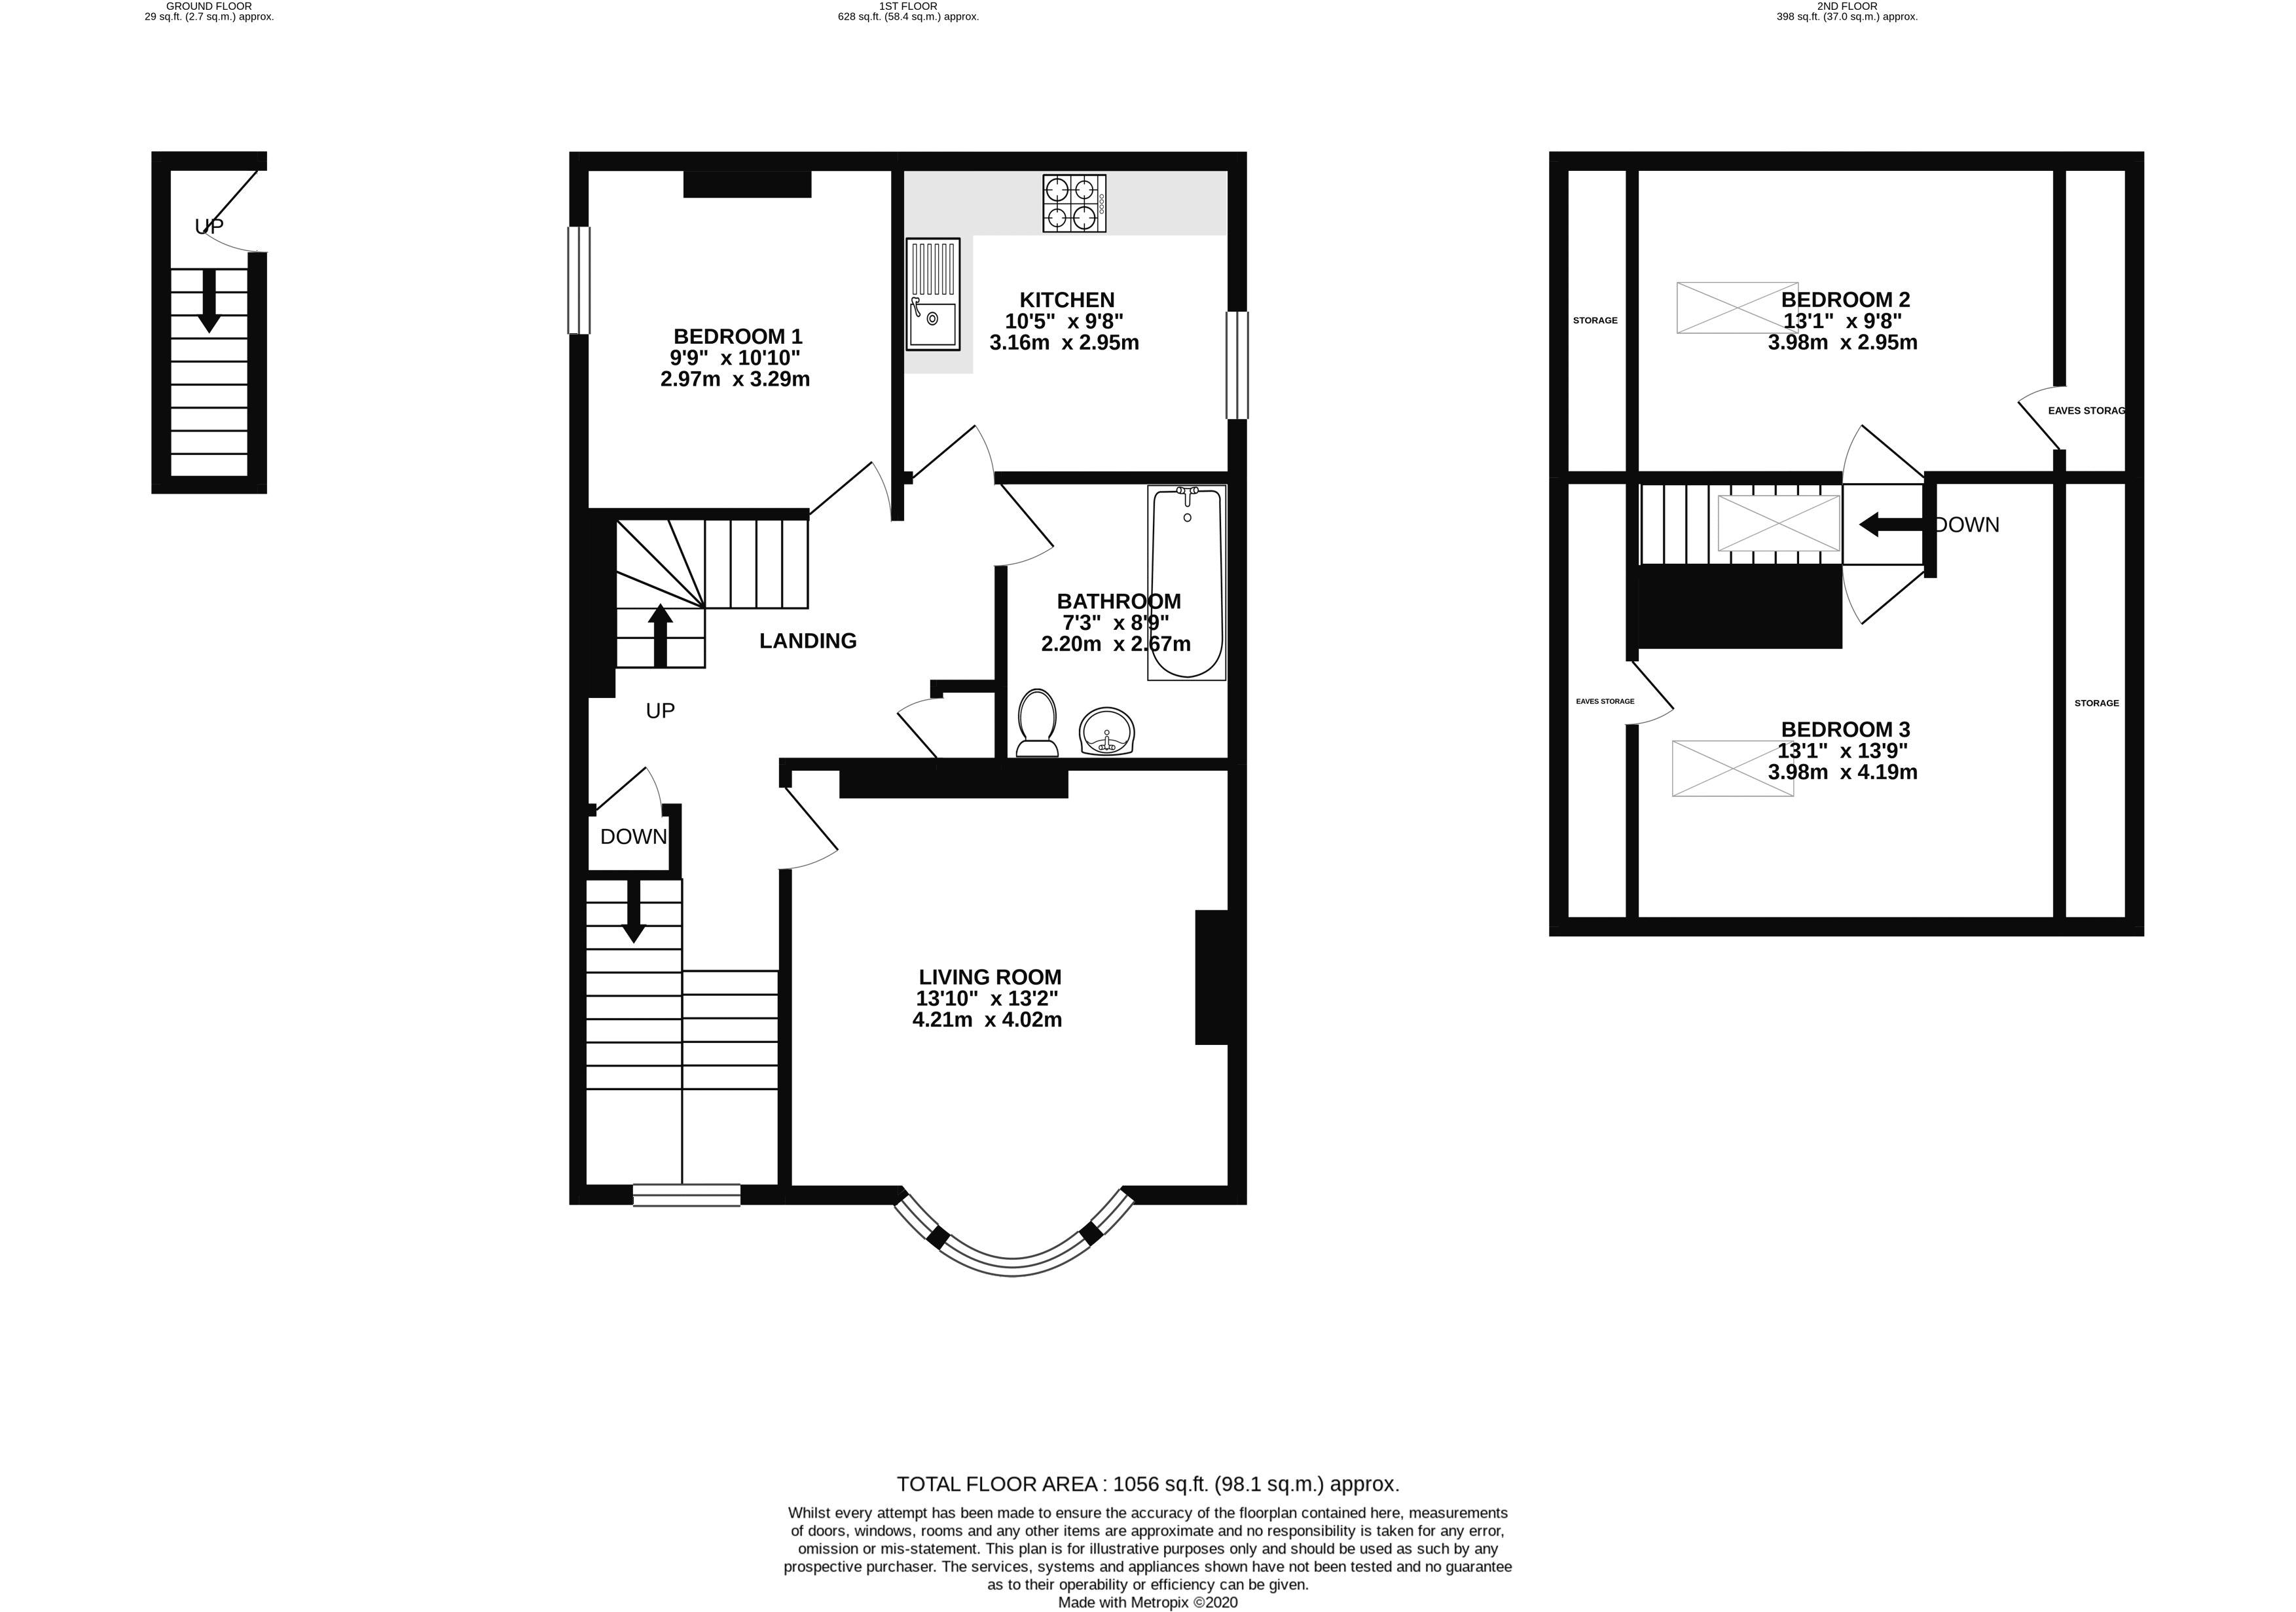 Floor plans for Middle Street, Brighton property for sale in Central Brighton, Brighton by Coapt